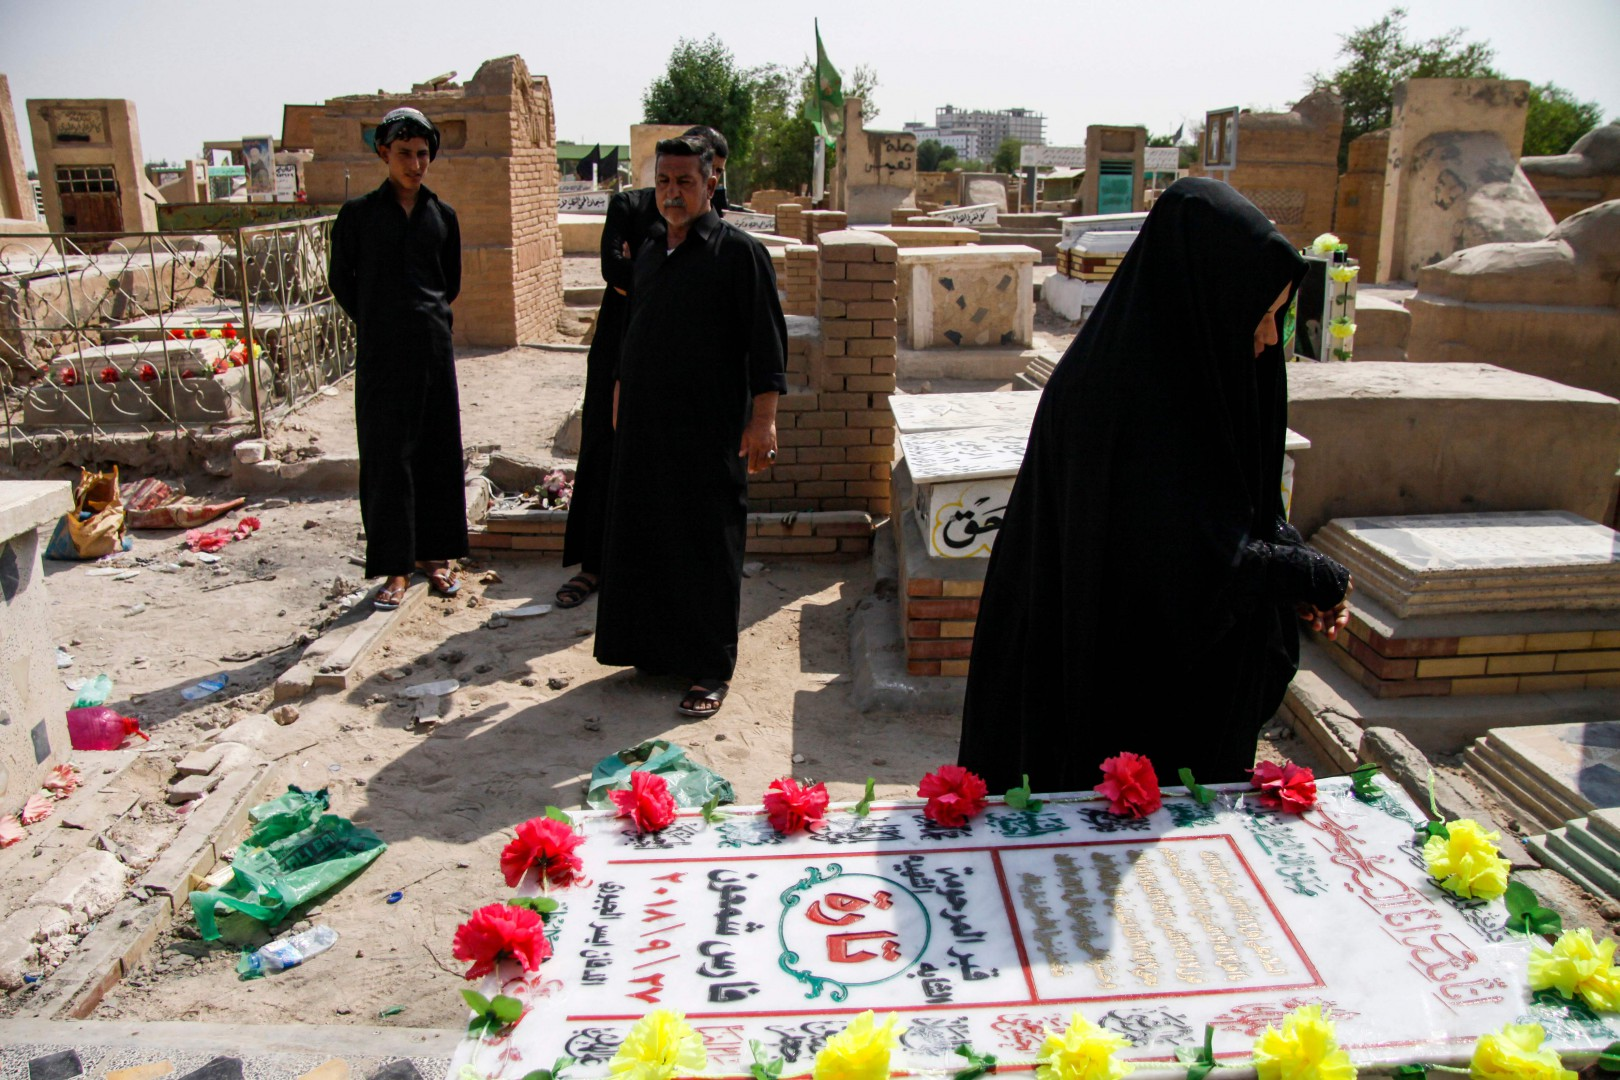 """An Iraqi woman is seen around the grave of slain model and Instagram starlet Tara Fares in the central holy shrine city of Najaf on October 2, 2018. - Fares was shot dead at the wheel of her Porsche convertible in central Baghdad on September 27, sending ripples through social media circles. The interior ministry opened a probe into yesterday's murder of the 22-year-old who suffered """"three fatal bullet wounds"""" as she drove through the capital's Camp Sarah district. (Photo by Haidar HAMDANI / AFP)"""